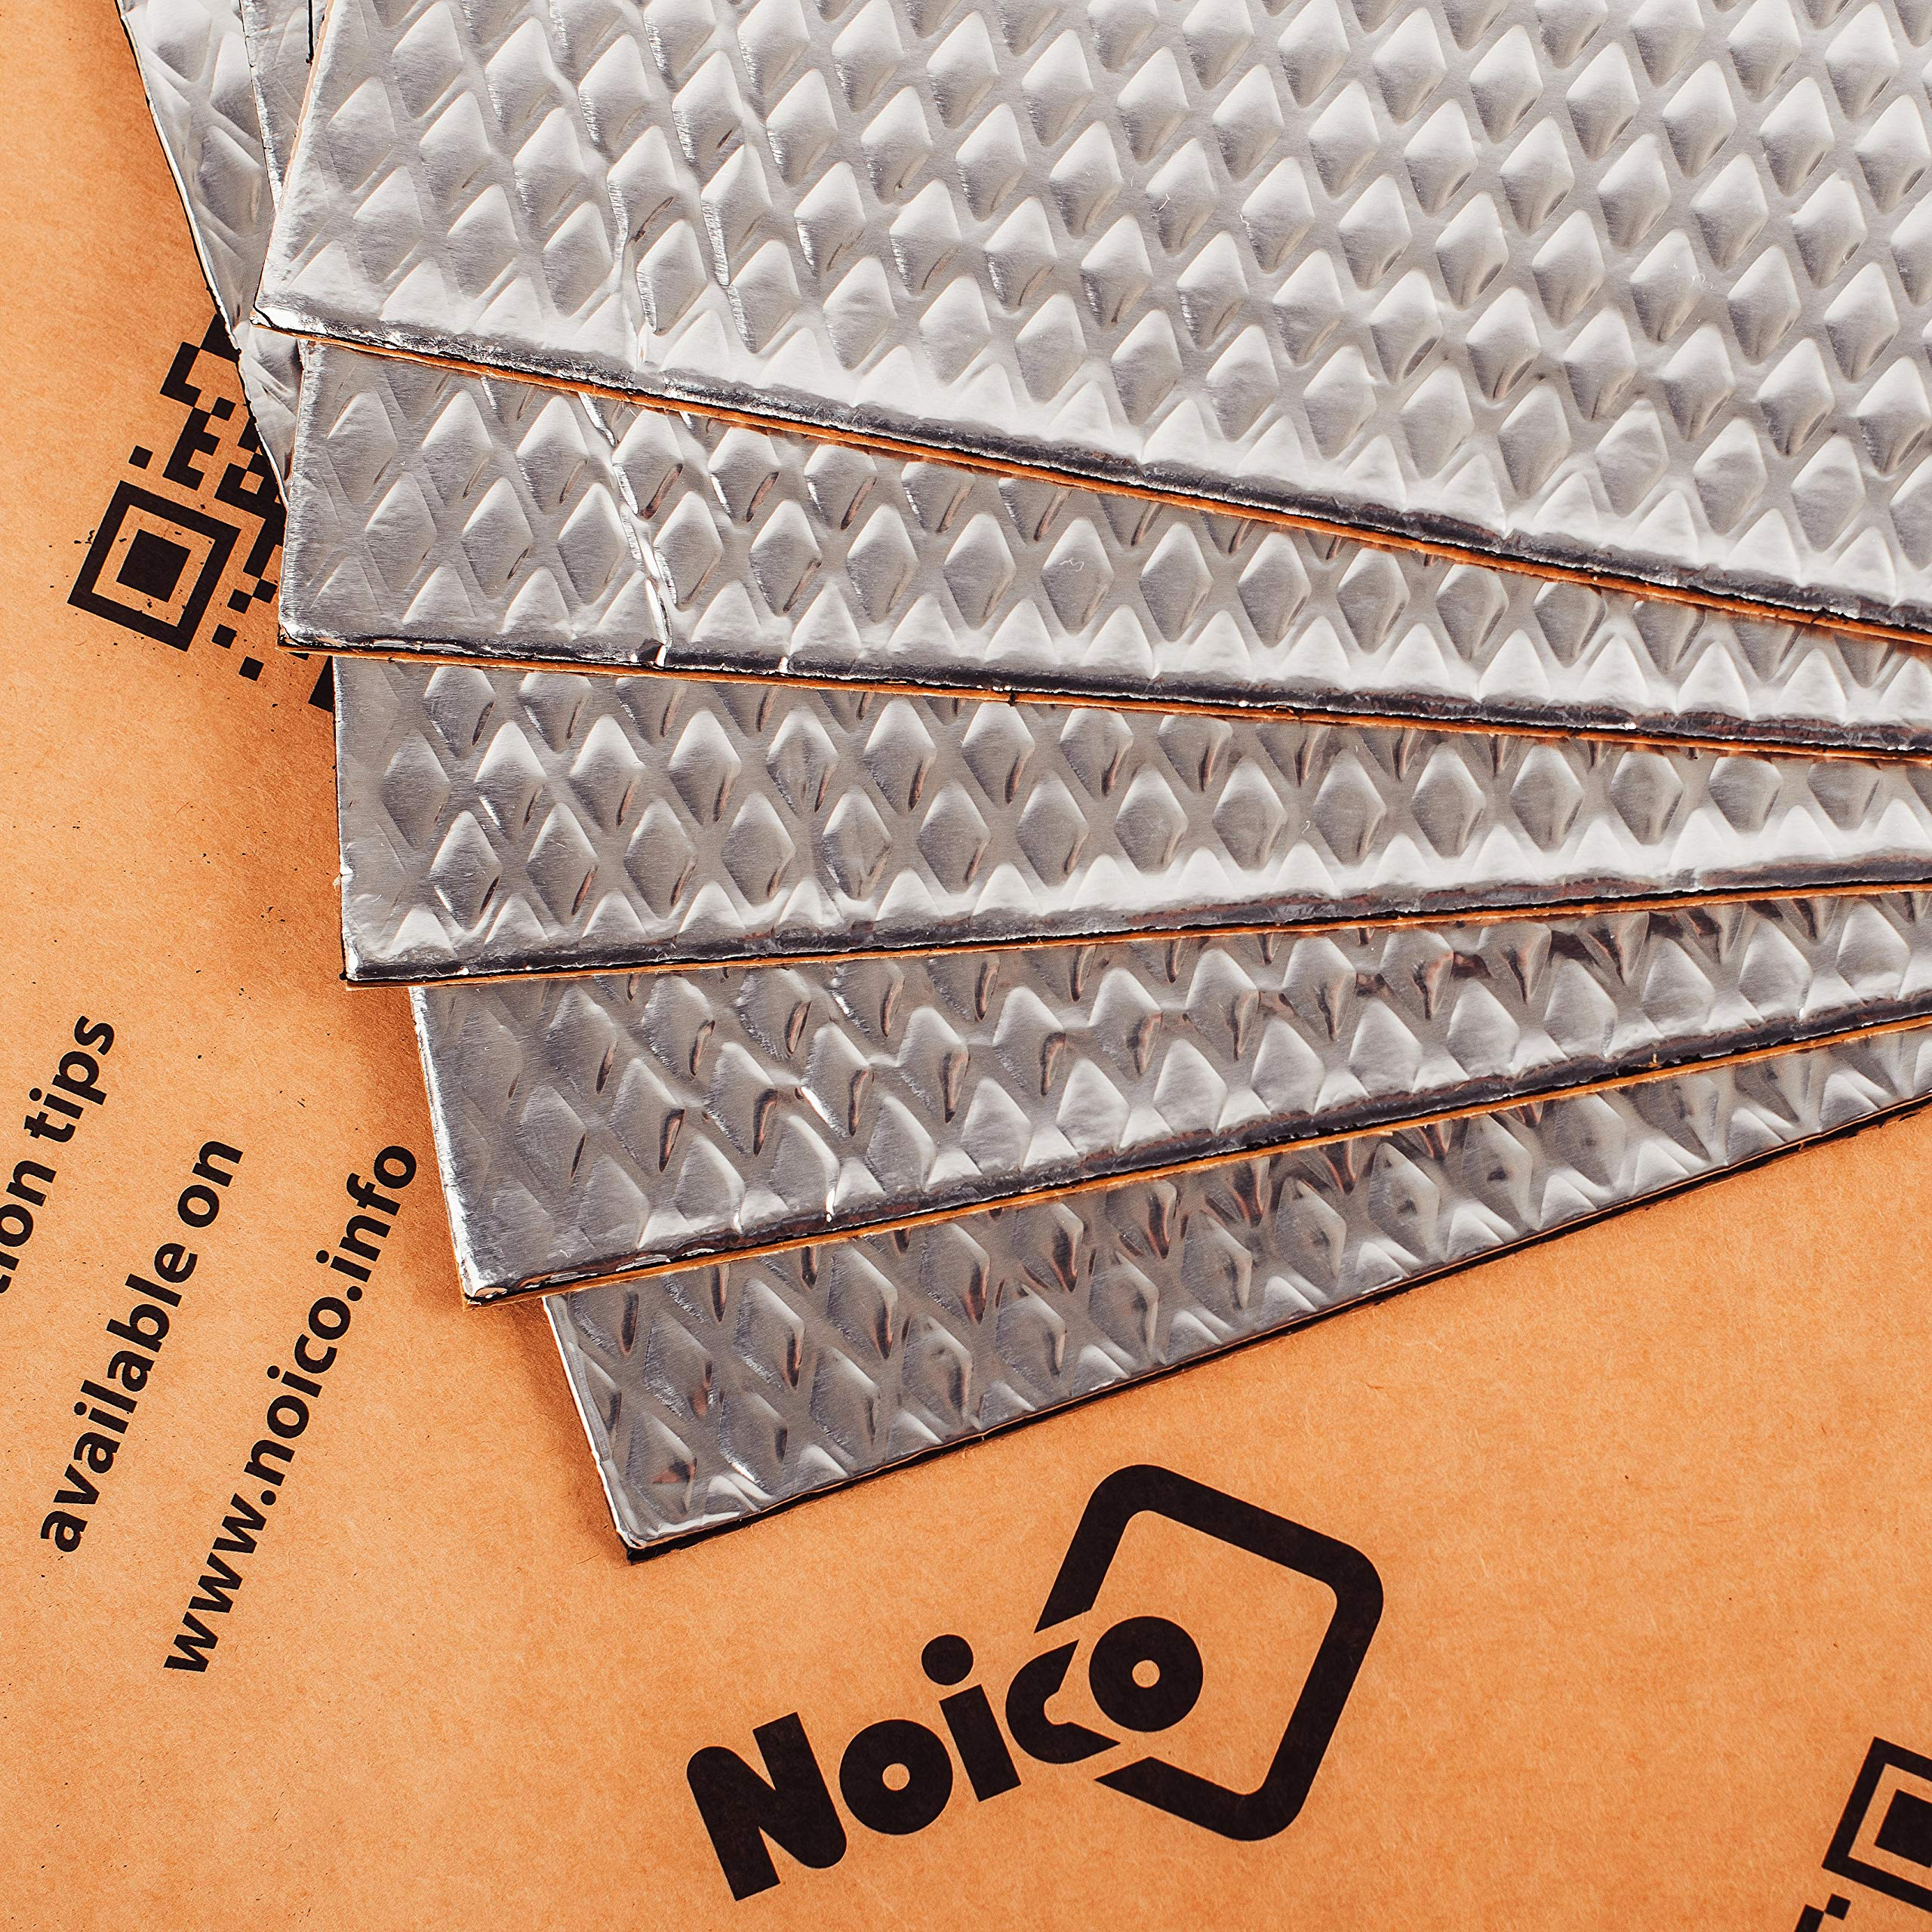 Noico 80 mil 5 sqft Car Sound Deadening Mat, Butyl Automotive Sound Deadener, Audio Noise Insulation and Dampening by Noico Solutions